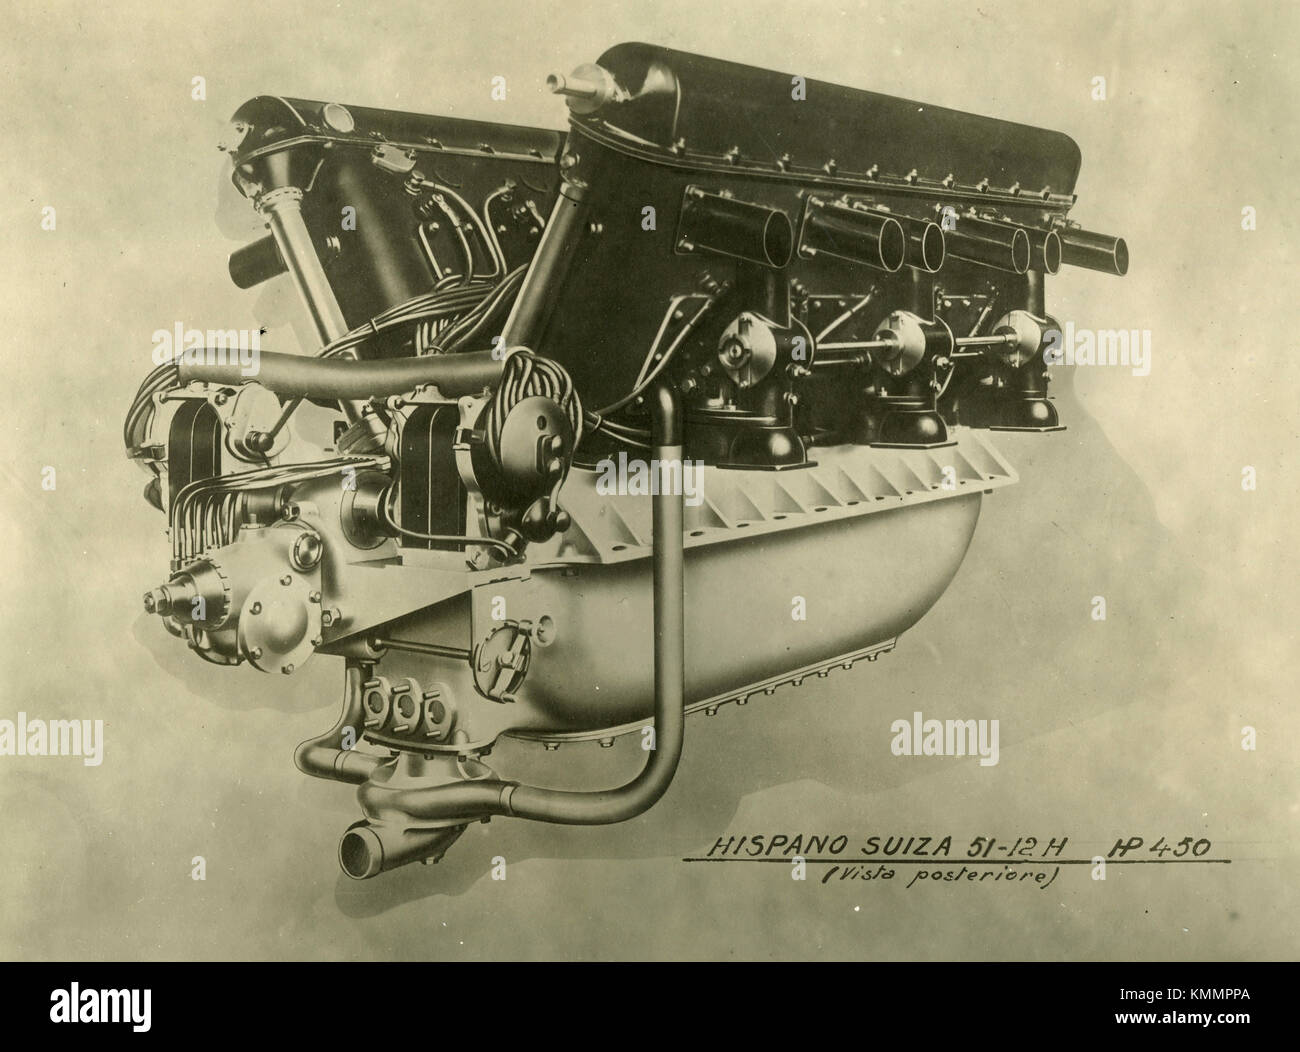 Hispano Suiza aircraft engine 51 12H HP 450, side view, France 1920s - Stock Image